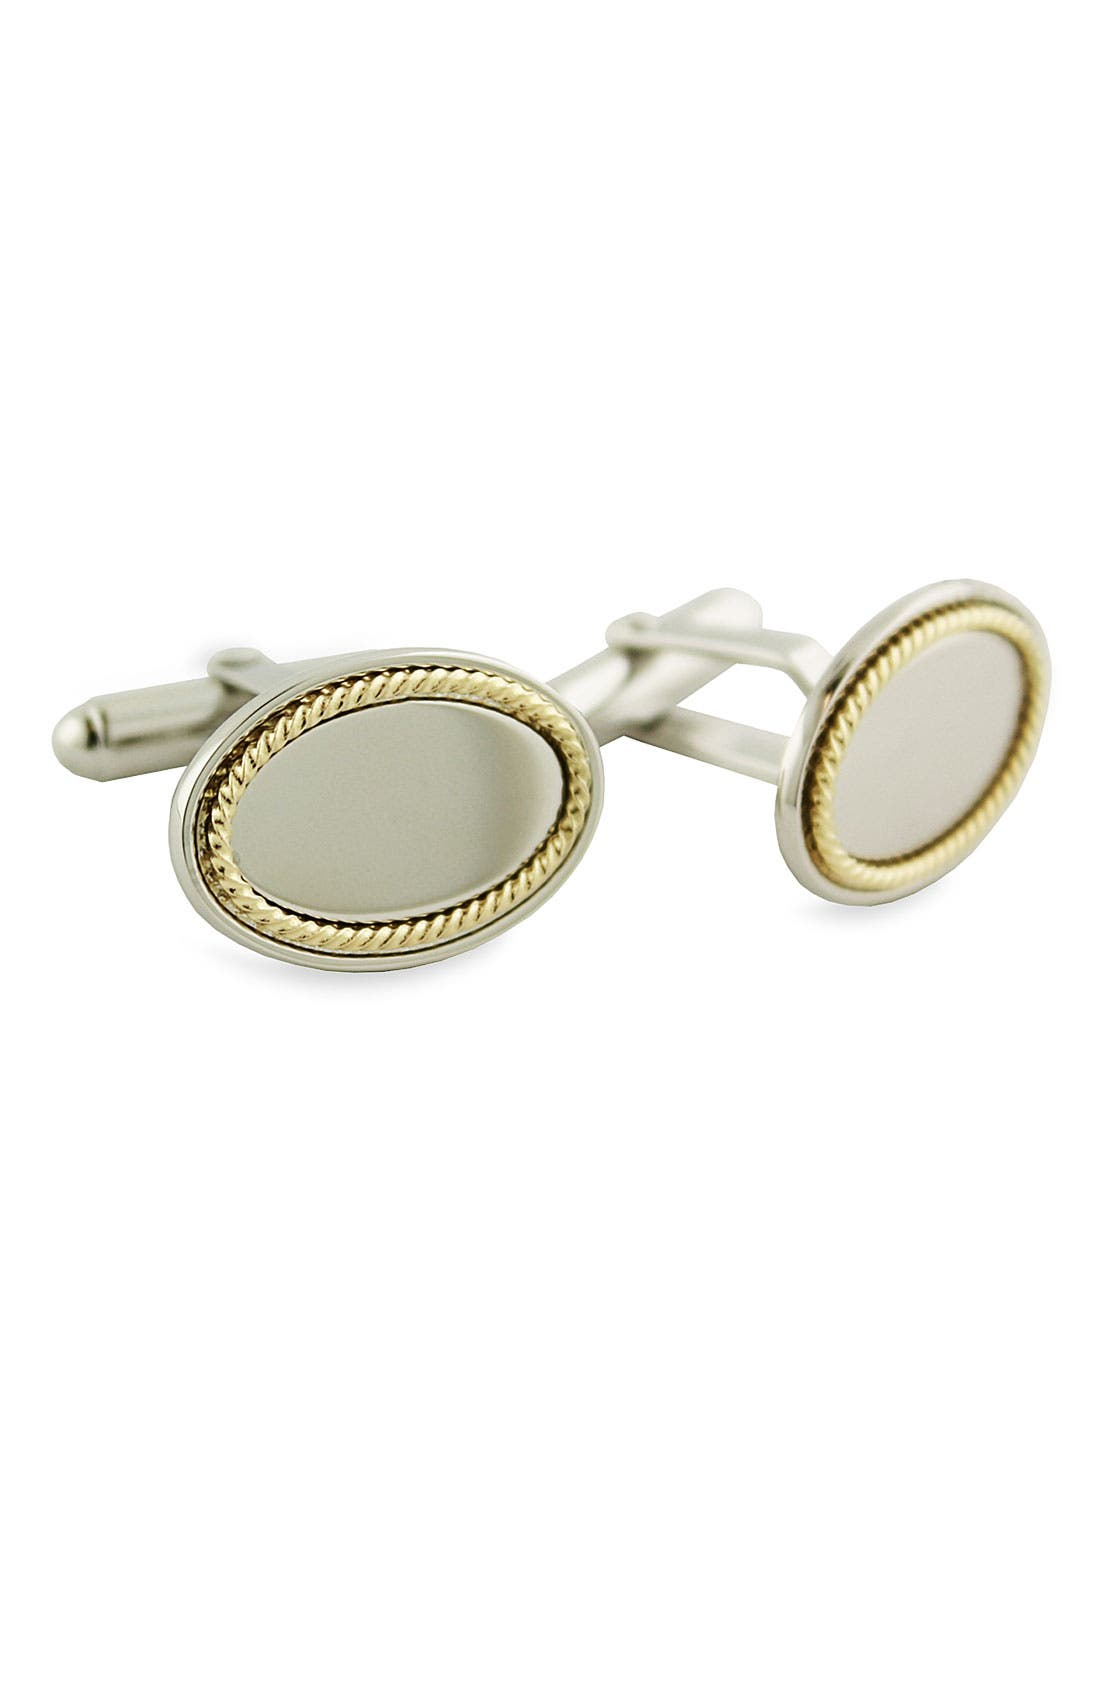 Main Image - David Donahue Gold & Sterling Silver Cuff Links